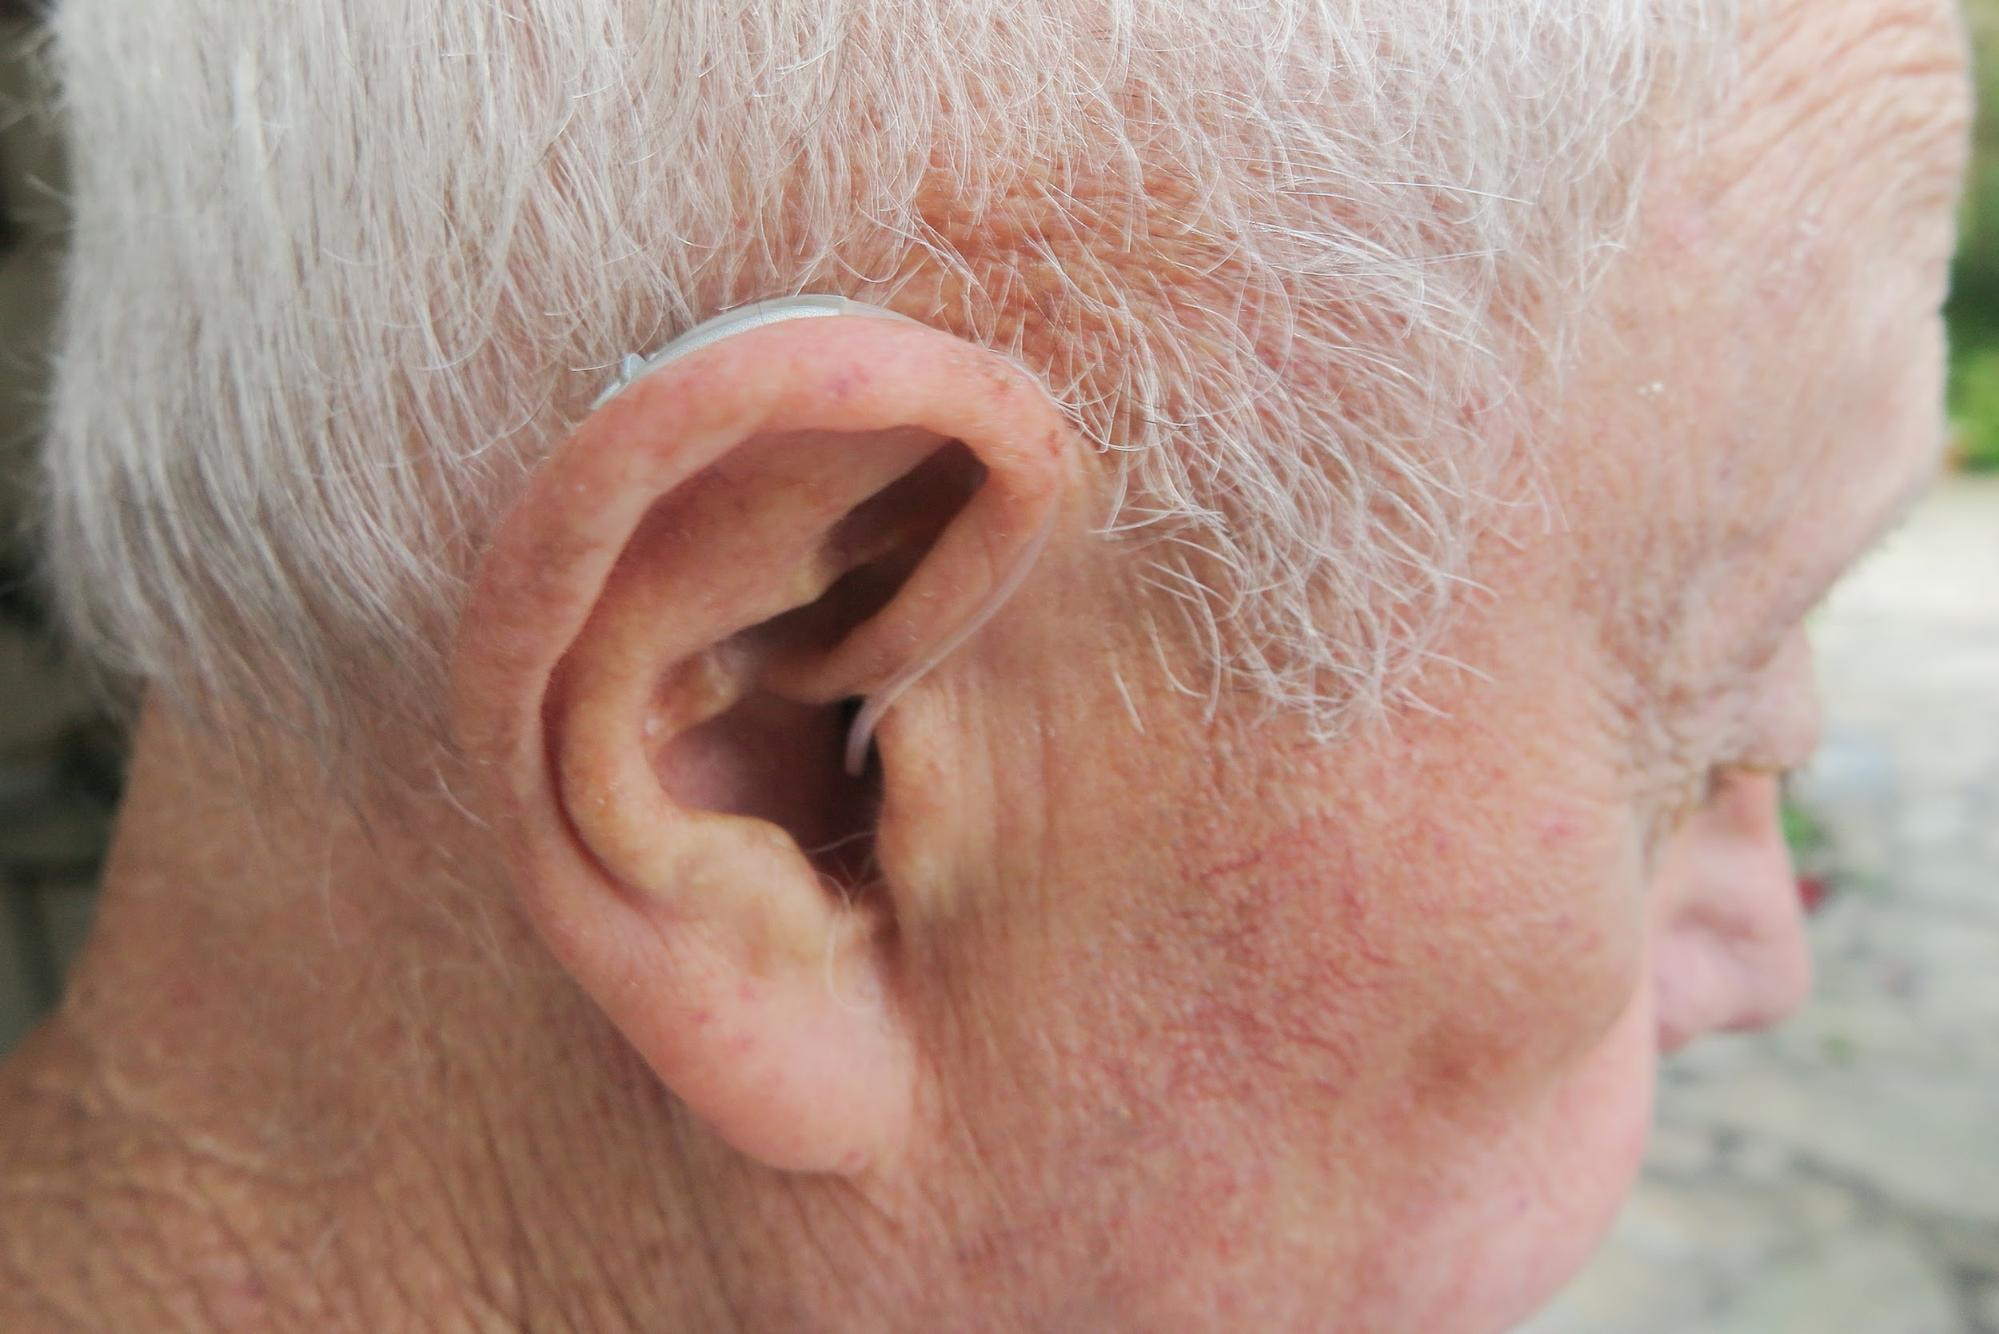 What is the latest hearing aid technology on the market?